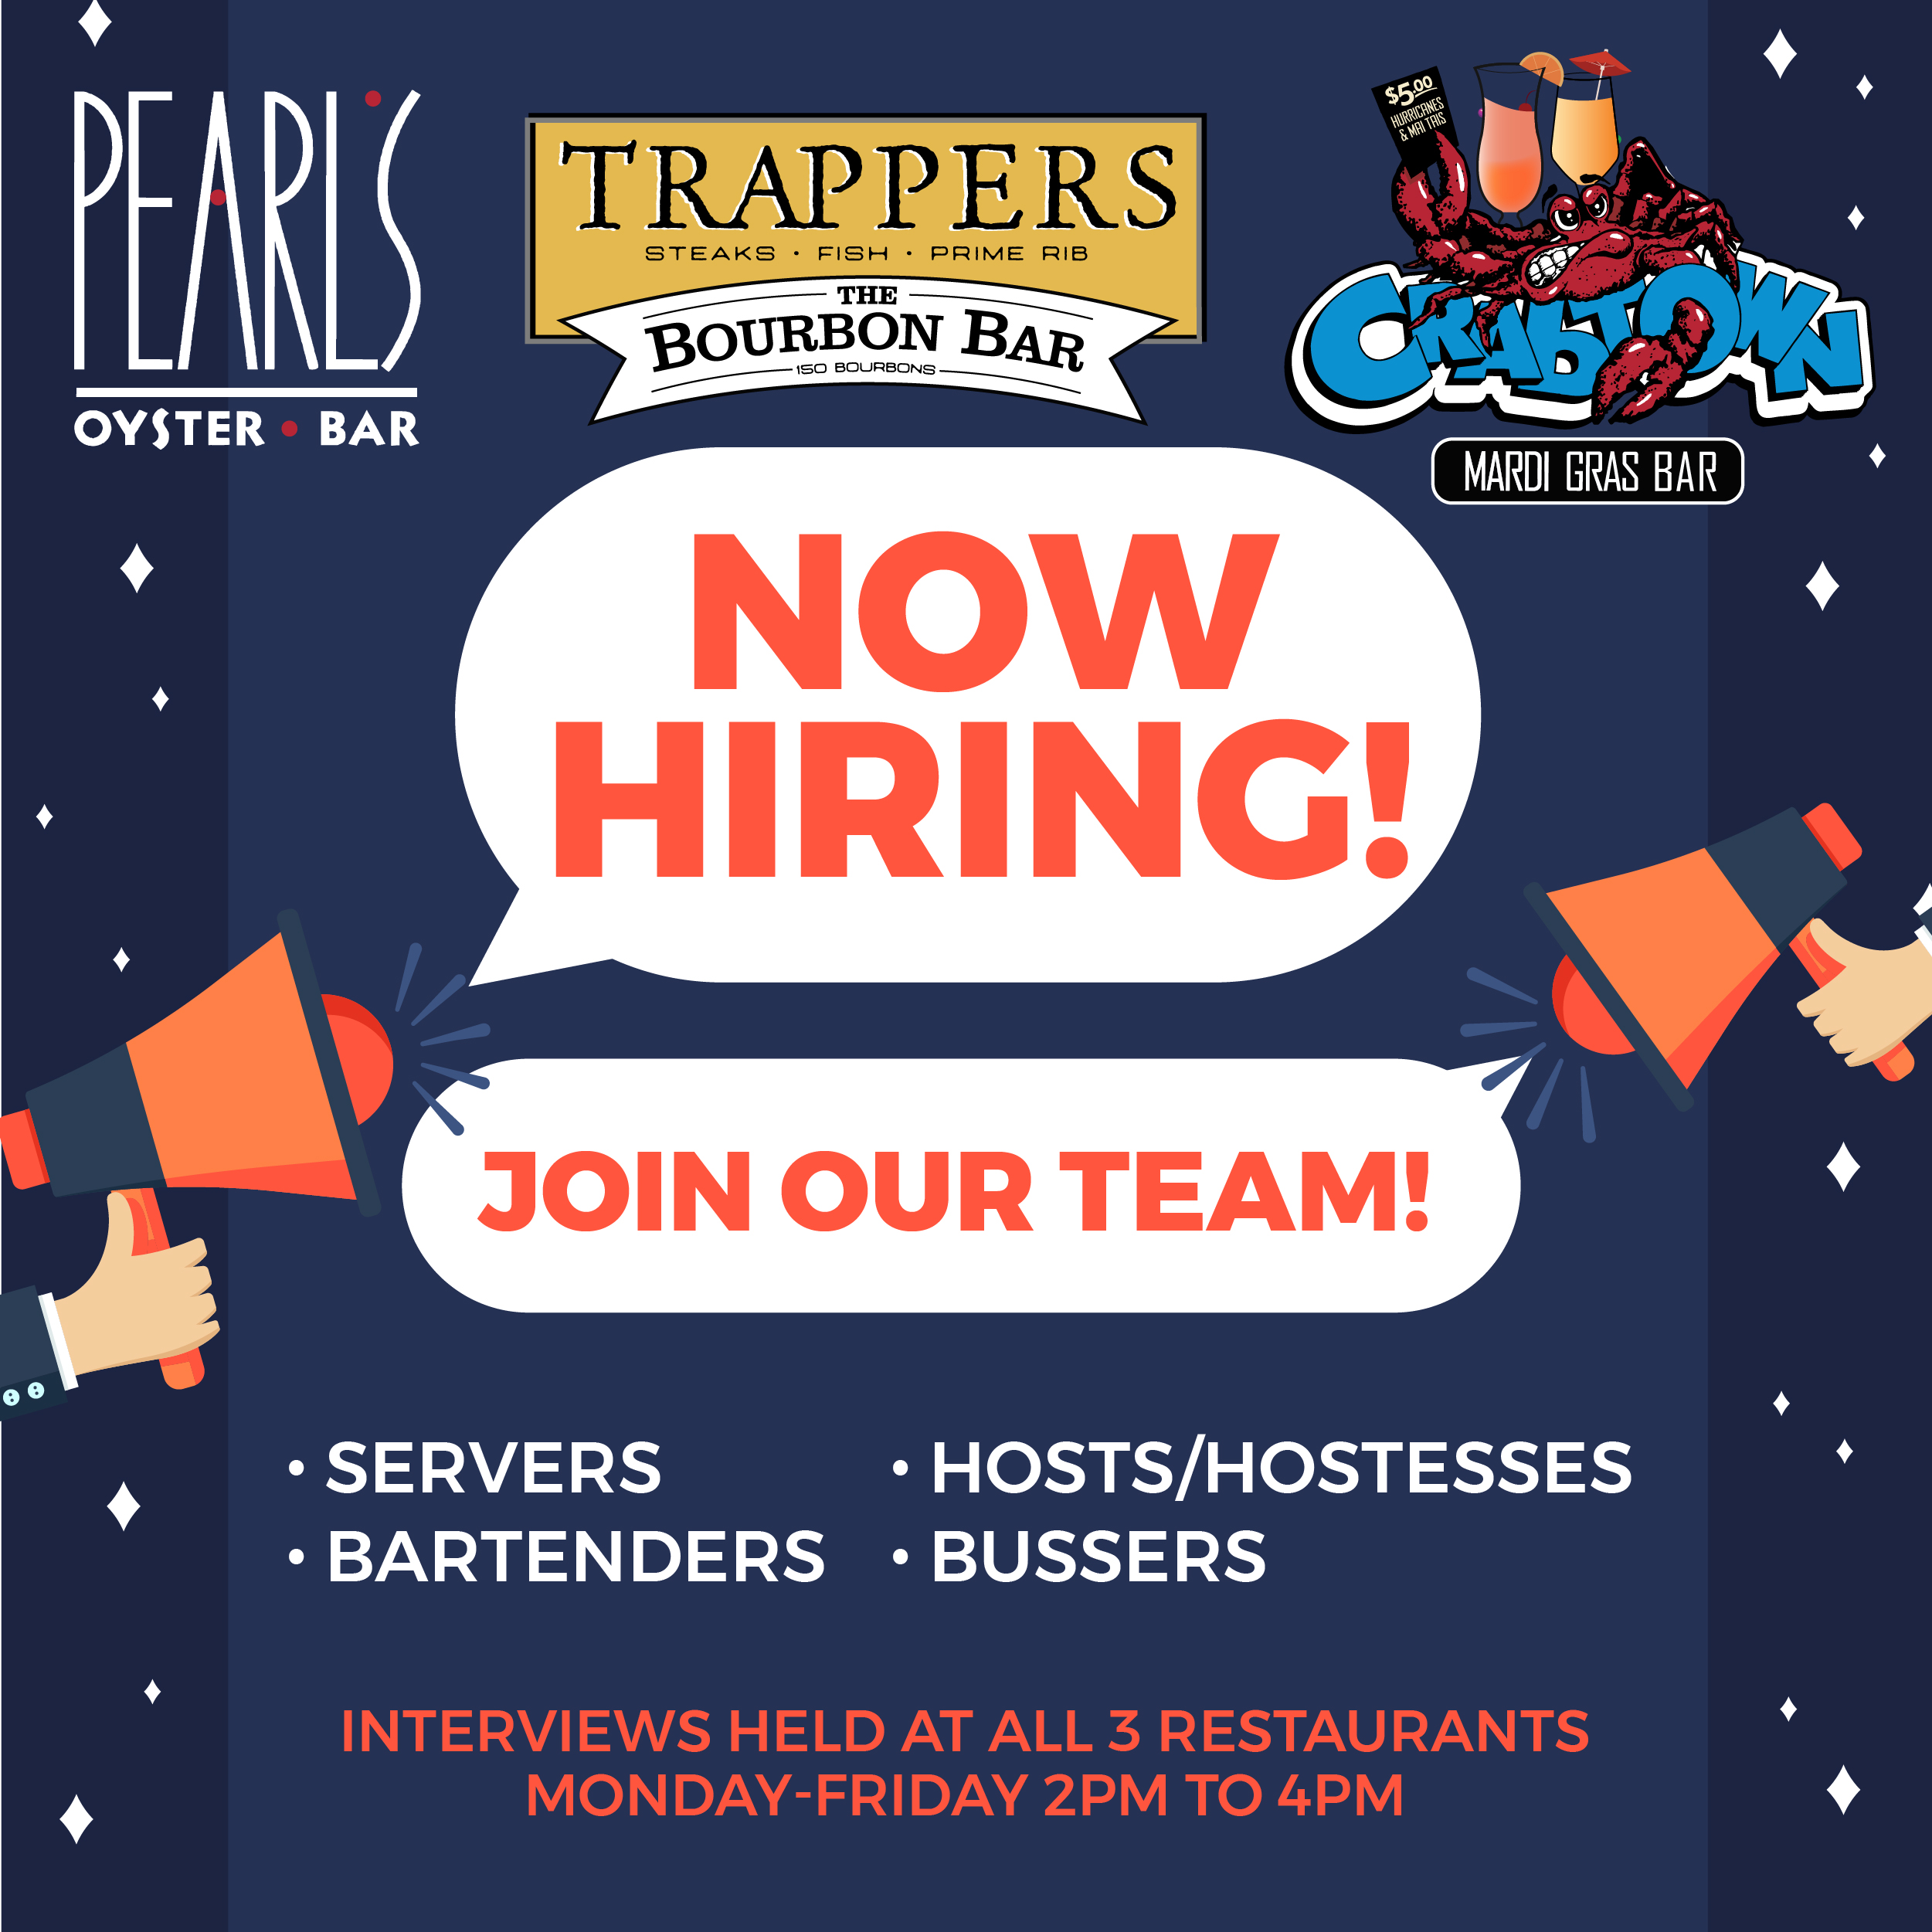 Come join our team today!